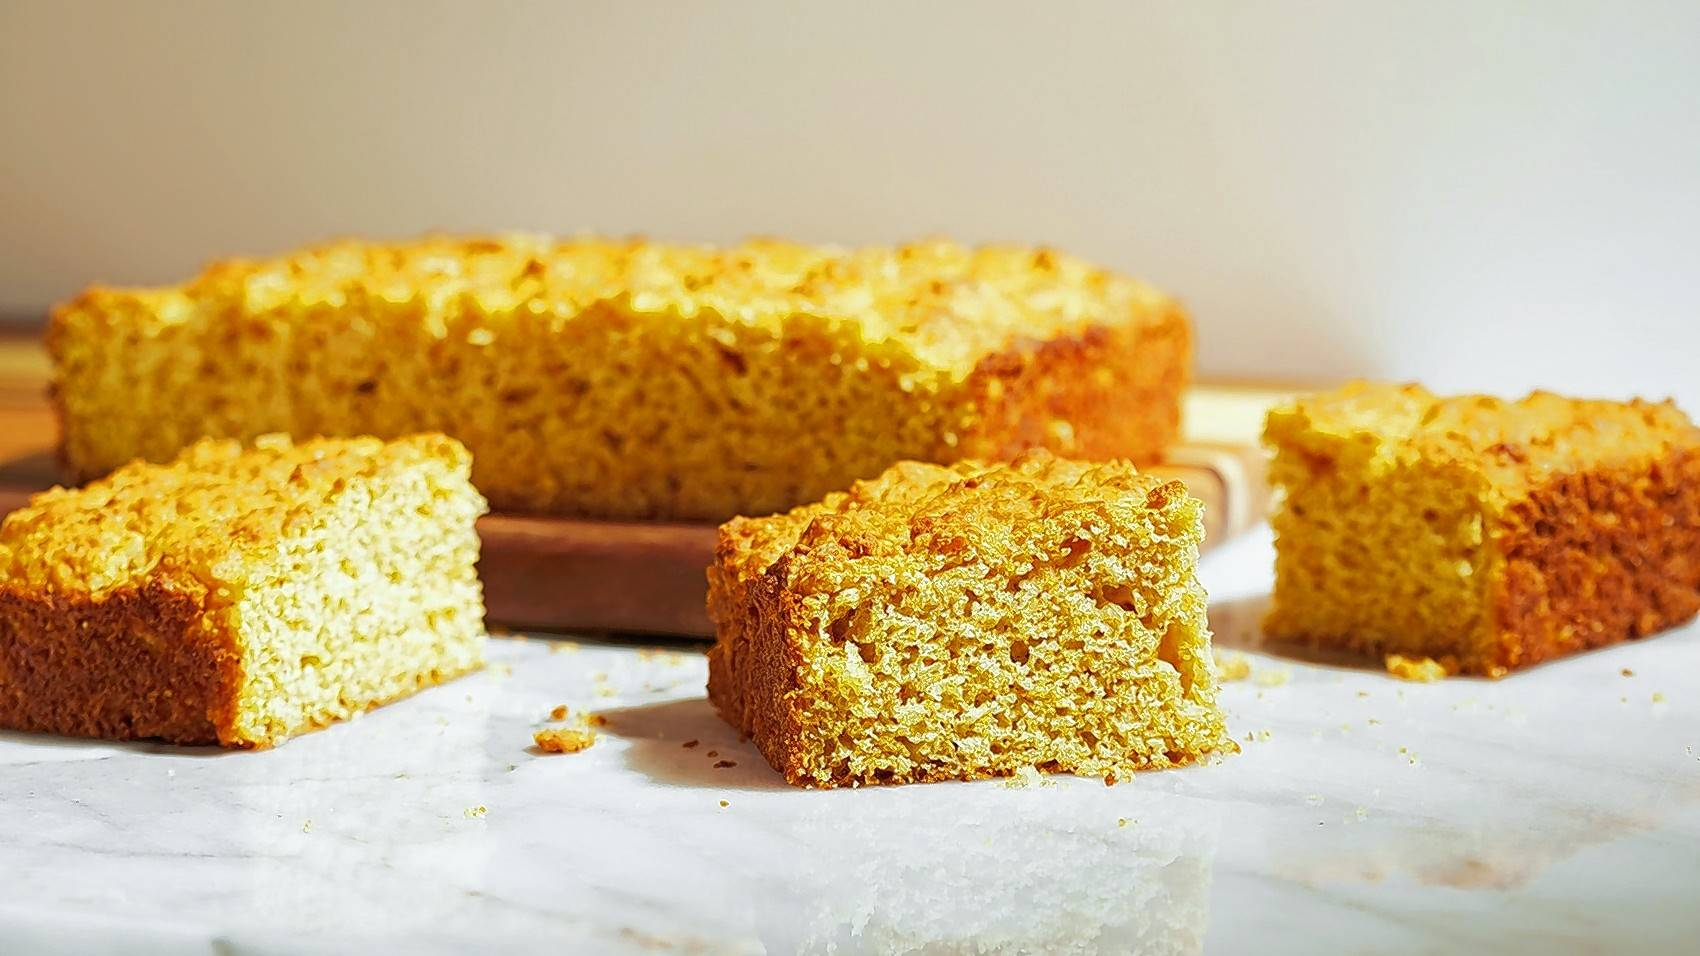 There's a debate over whether cornbread should be made with sugar or not.